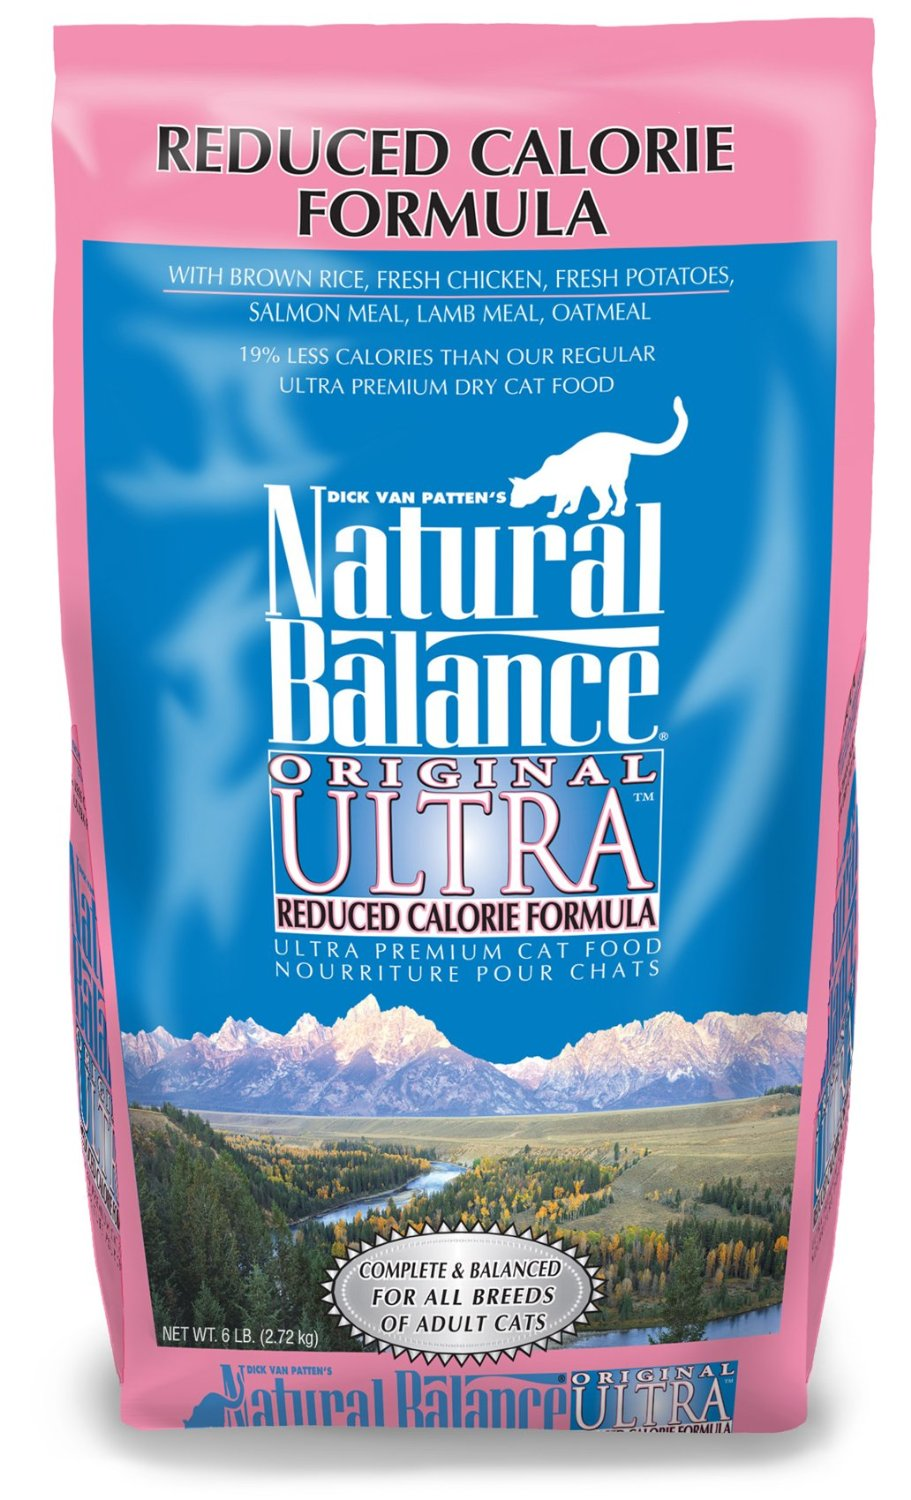 Natural Balance Original Ultra Reduced Calorie Formula Dry Cat Food 6lbs